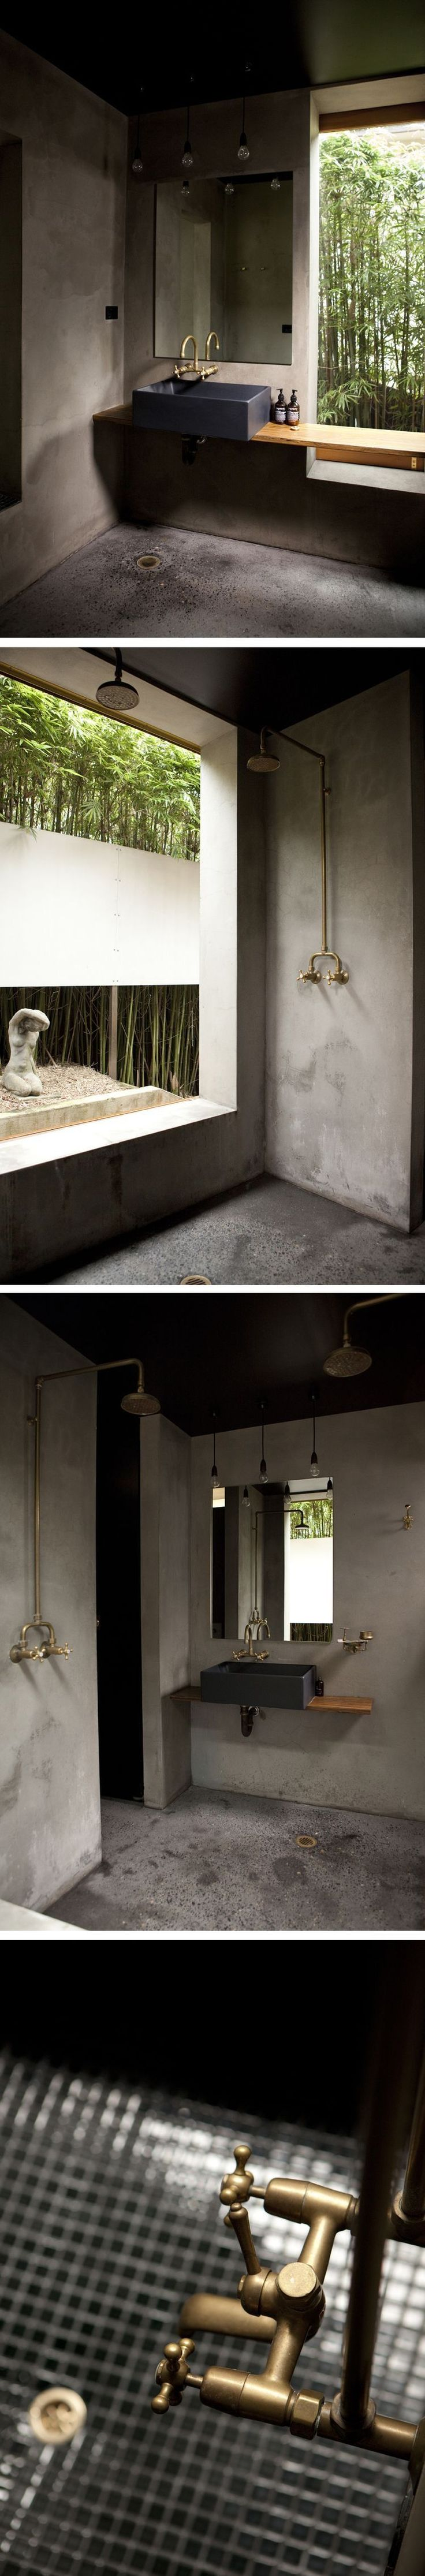 bathroom Concrete with wooden bench